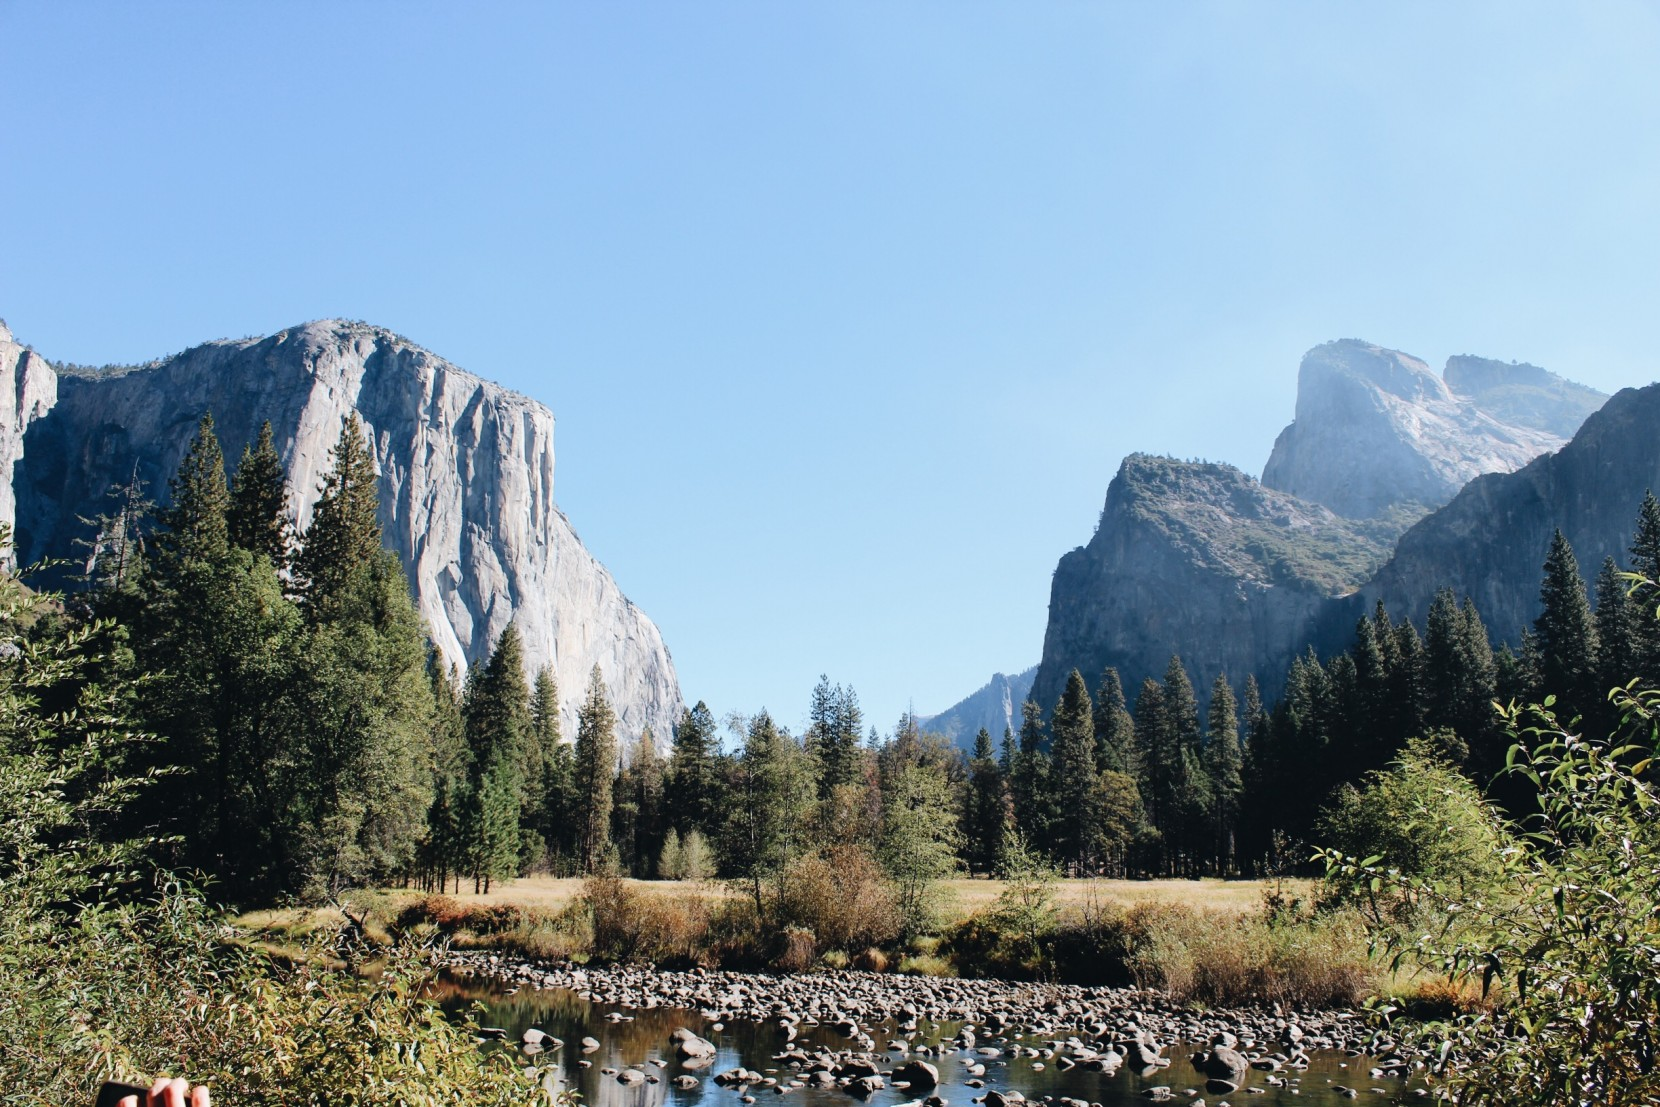 Video: Yosemite National Park Trip